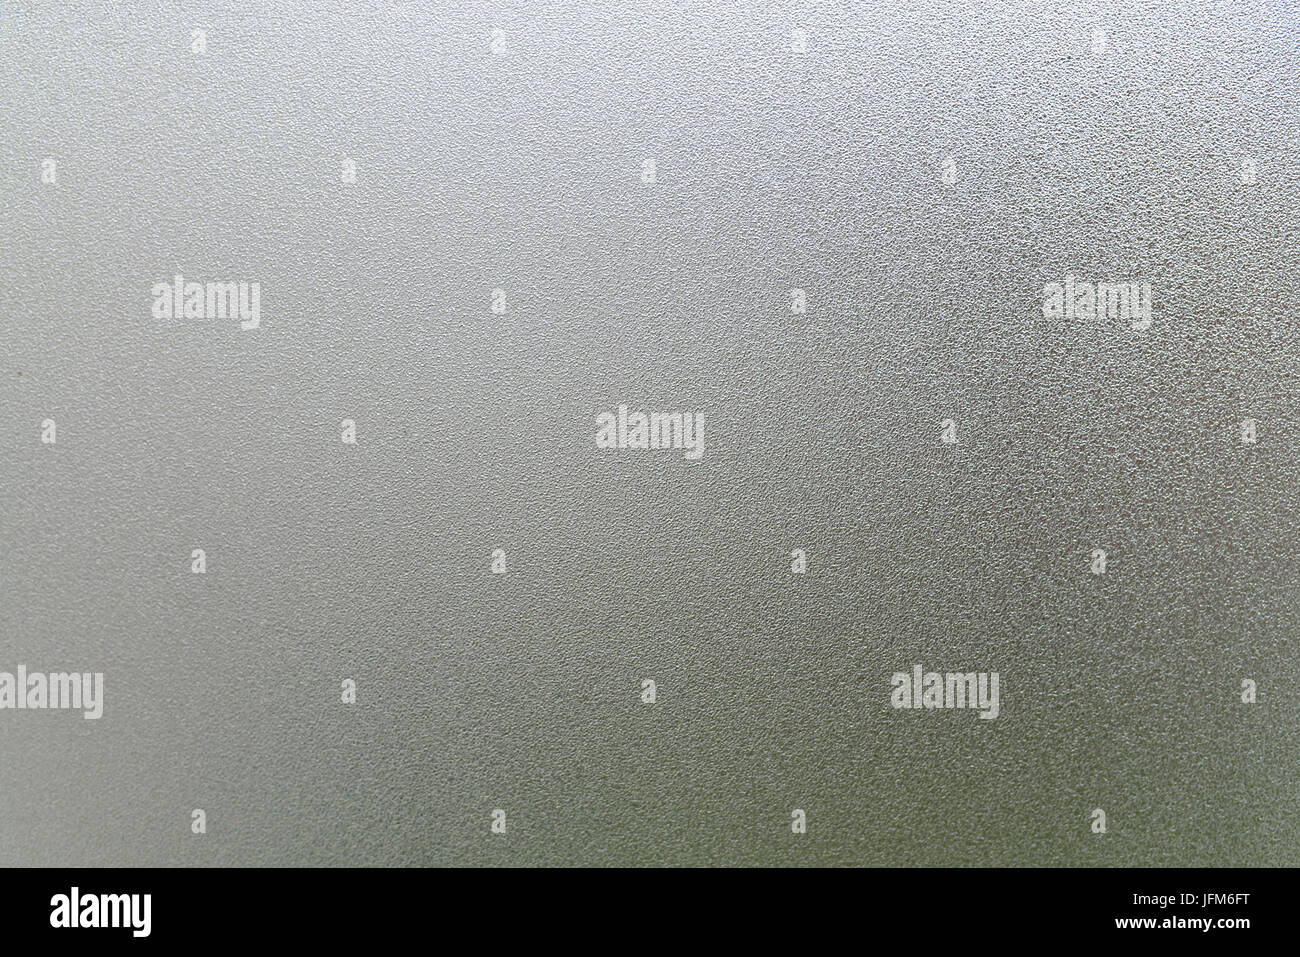 Milchglas Textur Frosted Glass Texture Stockfotos Frosted Glass Texture Bilder